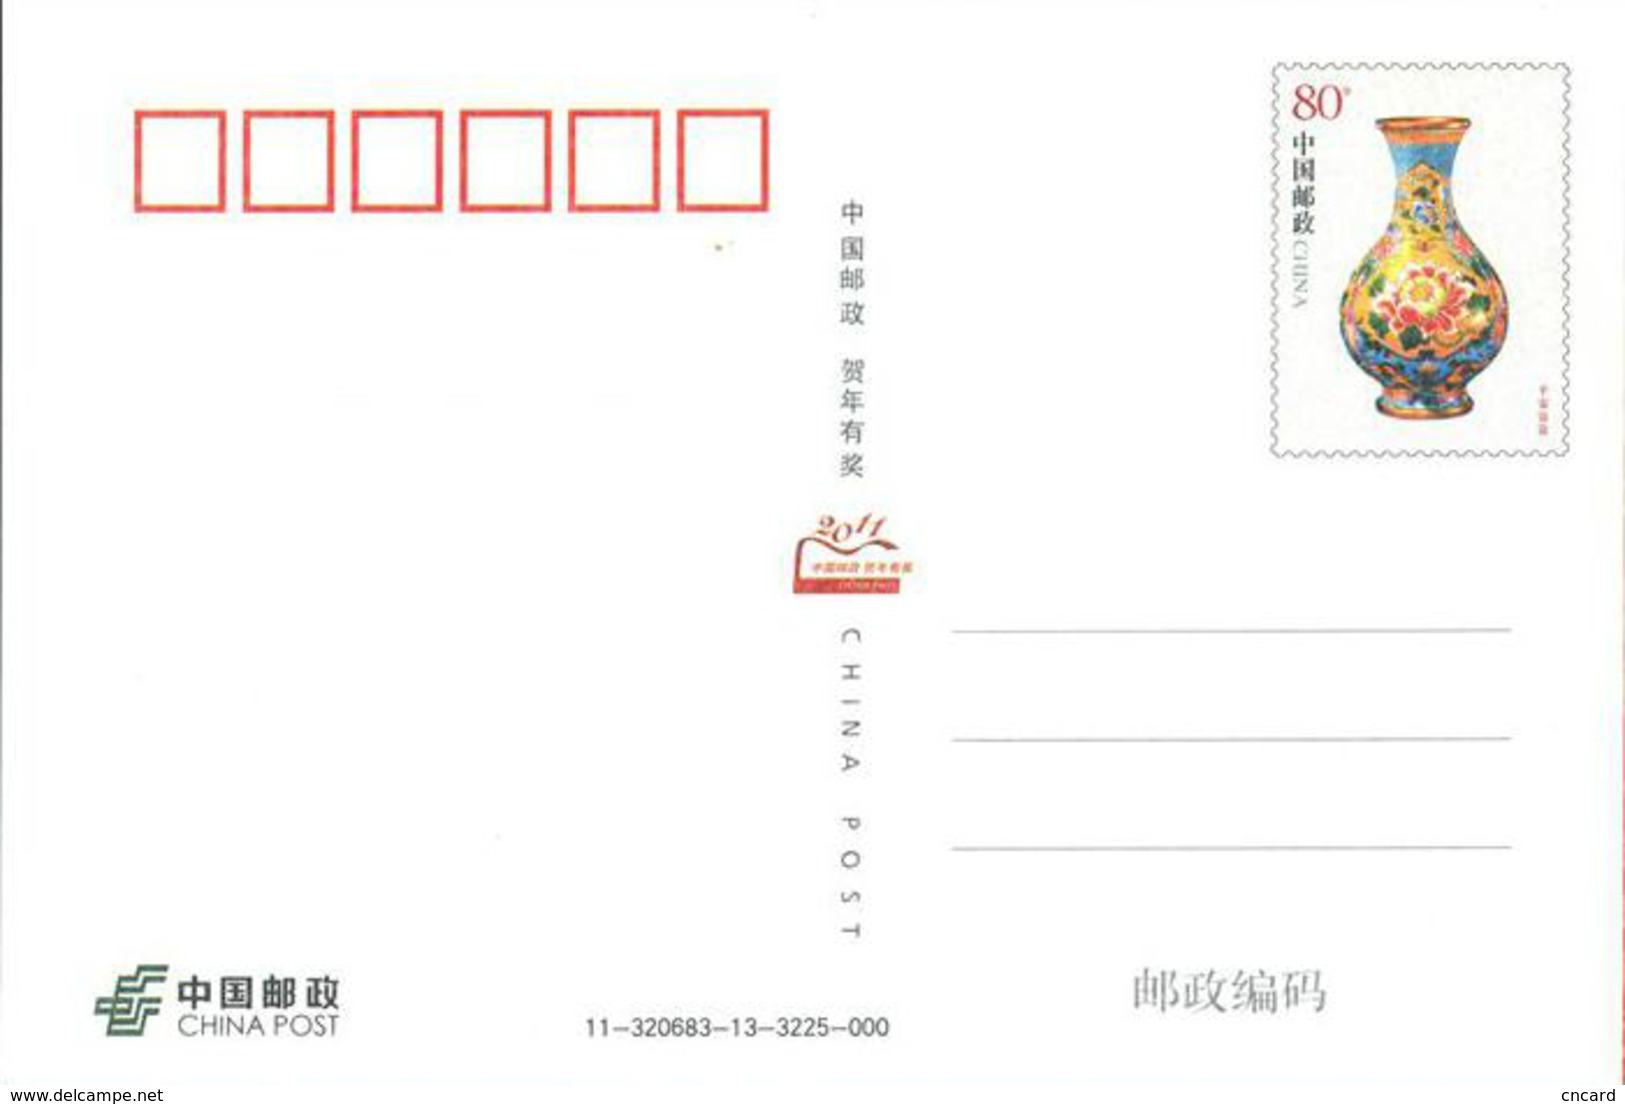 T80-107 ]  Flight Attendants Air Attendants Stewardesses Hostesses Cabin Crew , China Pre-paid Card, Postal Stationery - Other